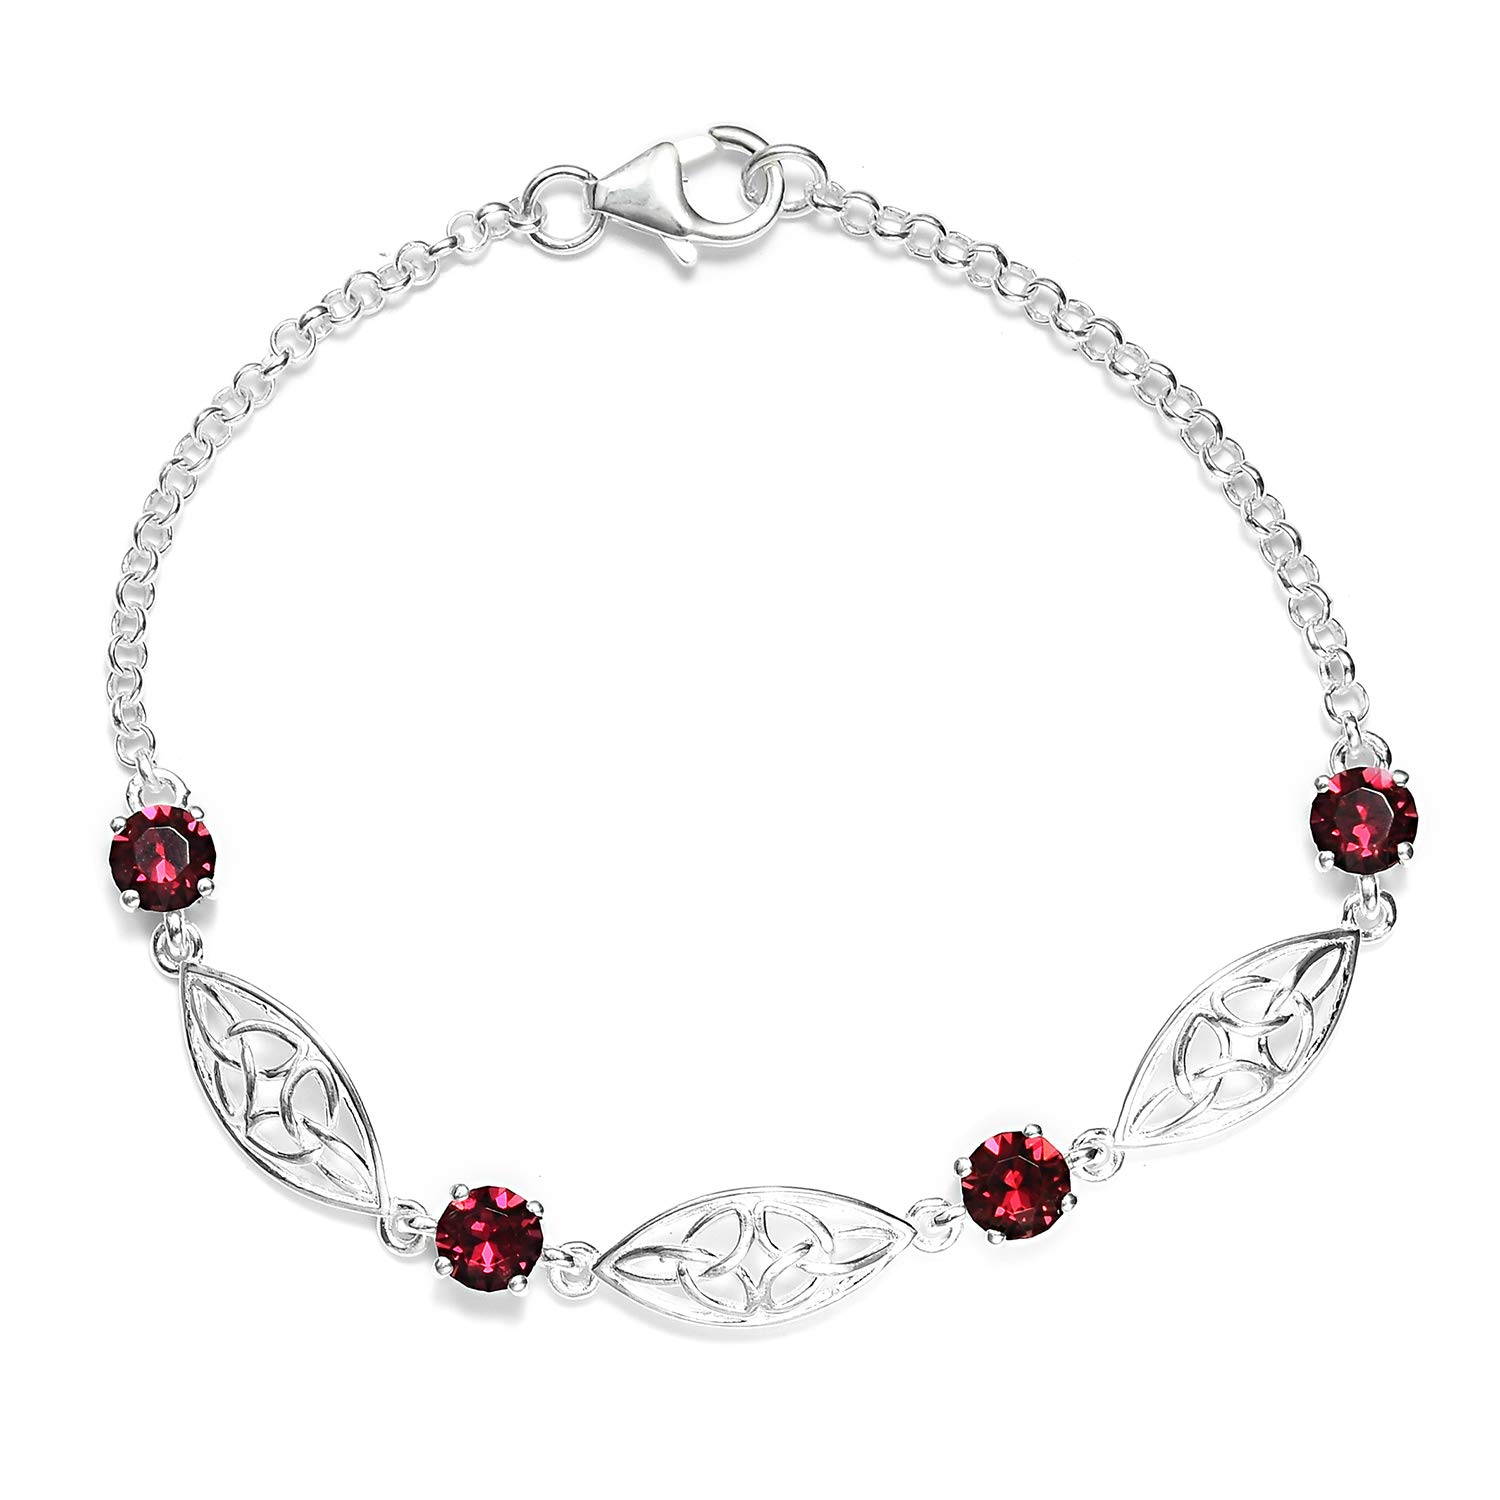 925 Sterling Silver Made with SWAROVSKI Round Ruby Crystal Bolo Bracelet for Women Hypoallergenic Jewelry Size 7.25'' Cttw 1.4